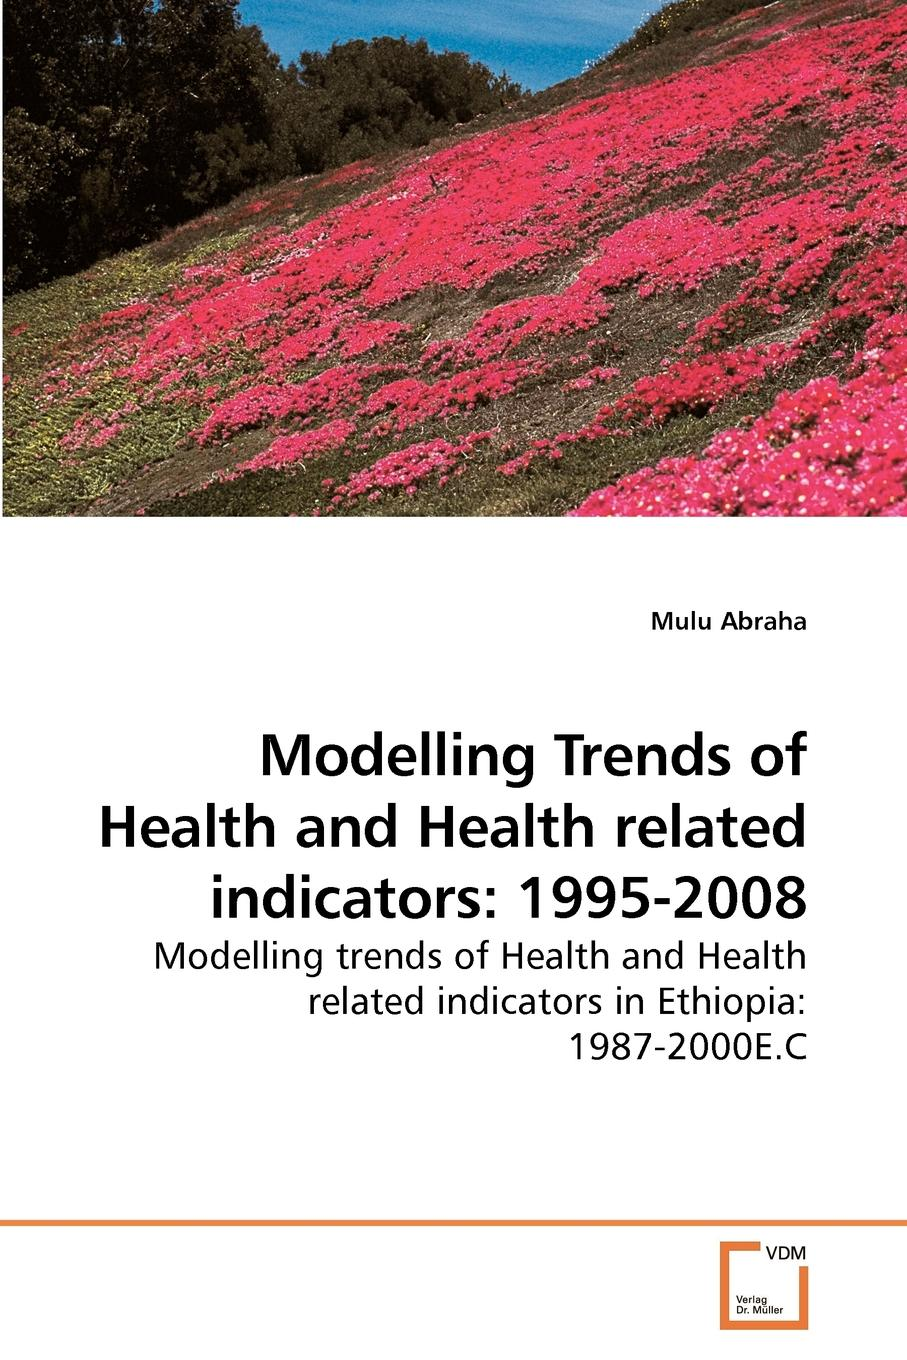 Mulu Abraha Modelling Trends of Health and Health related indicators. 1995-2008 mounir mesbah rasch models in health